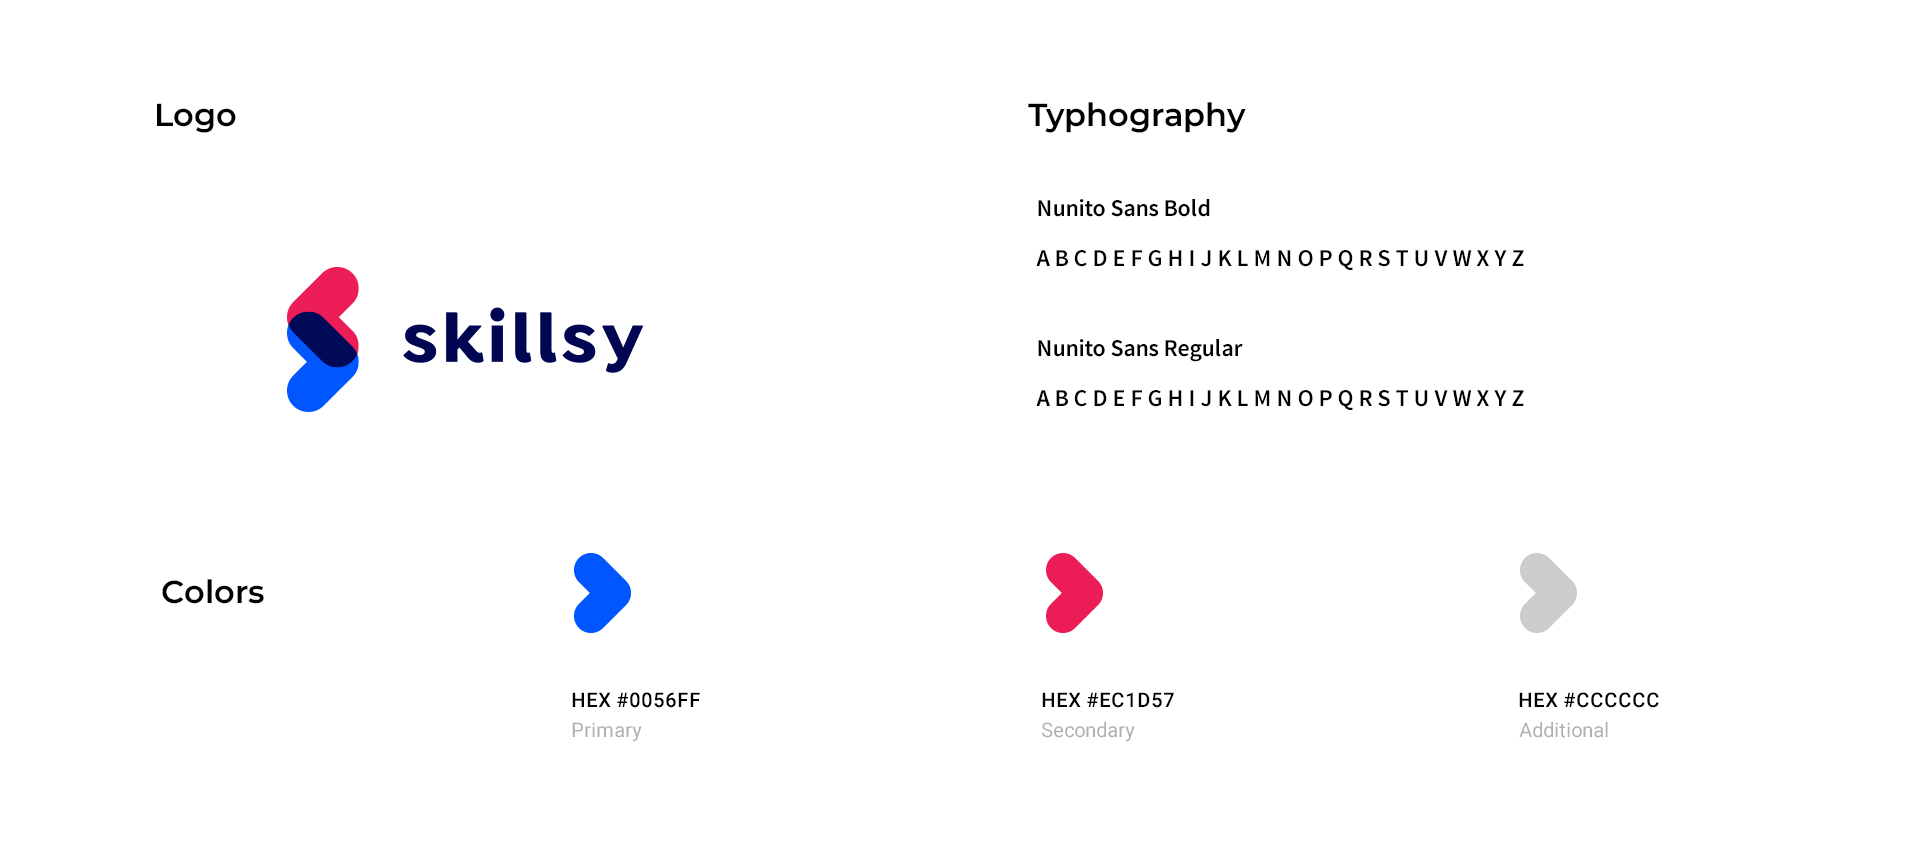 Skills logo, typography and brand colors and icons